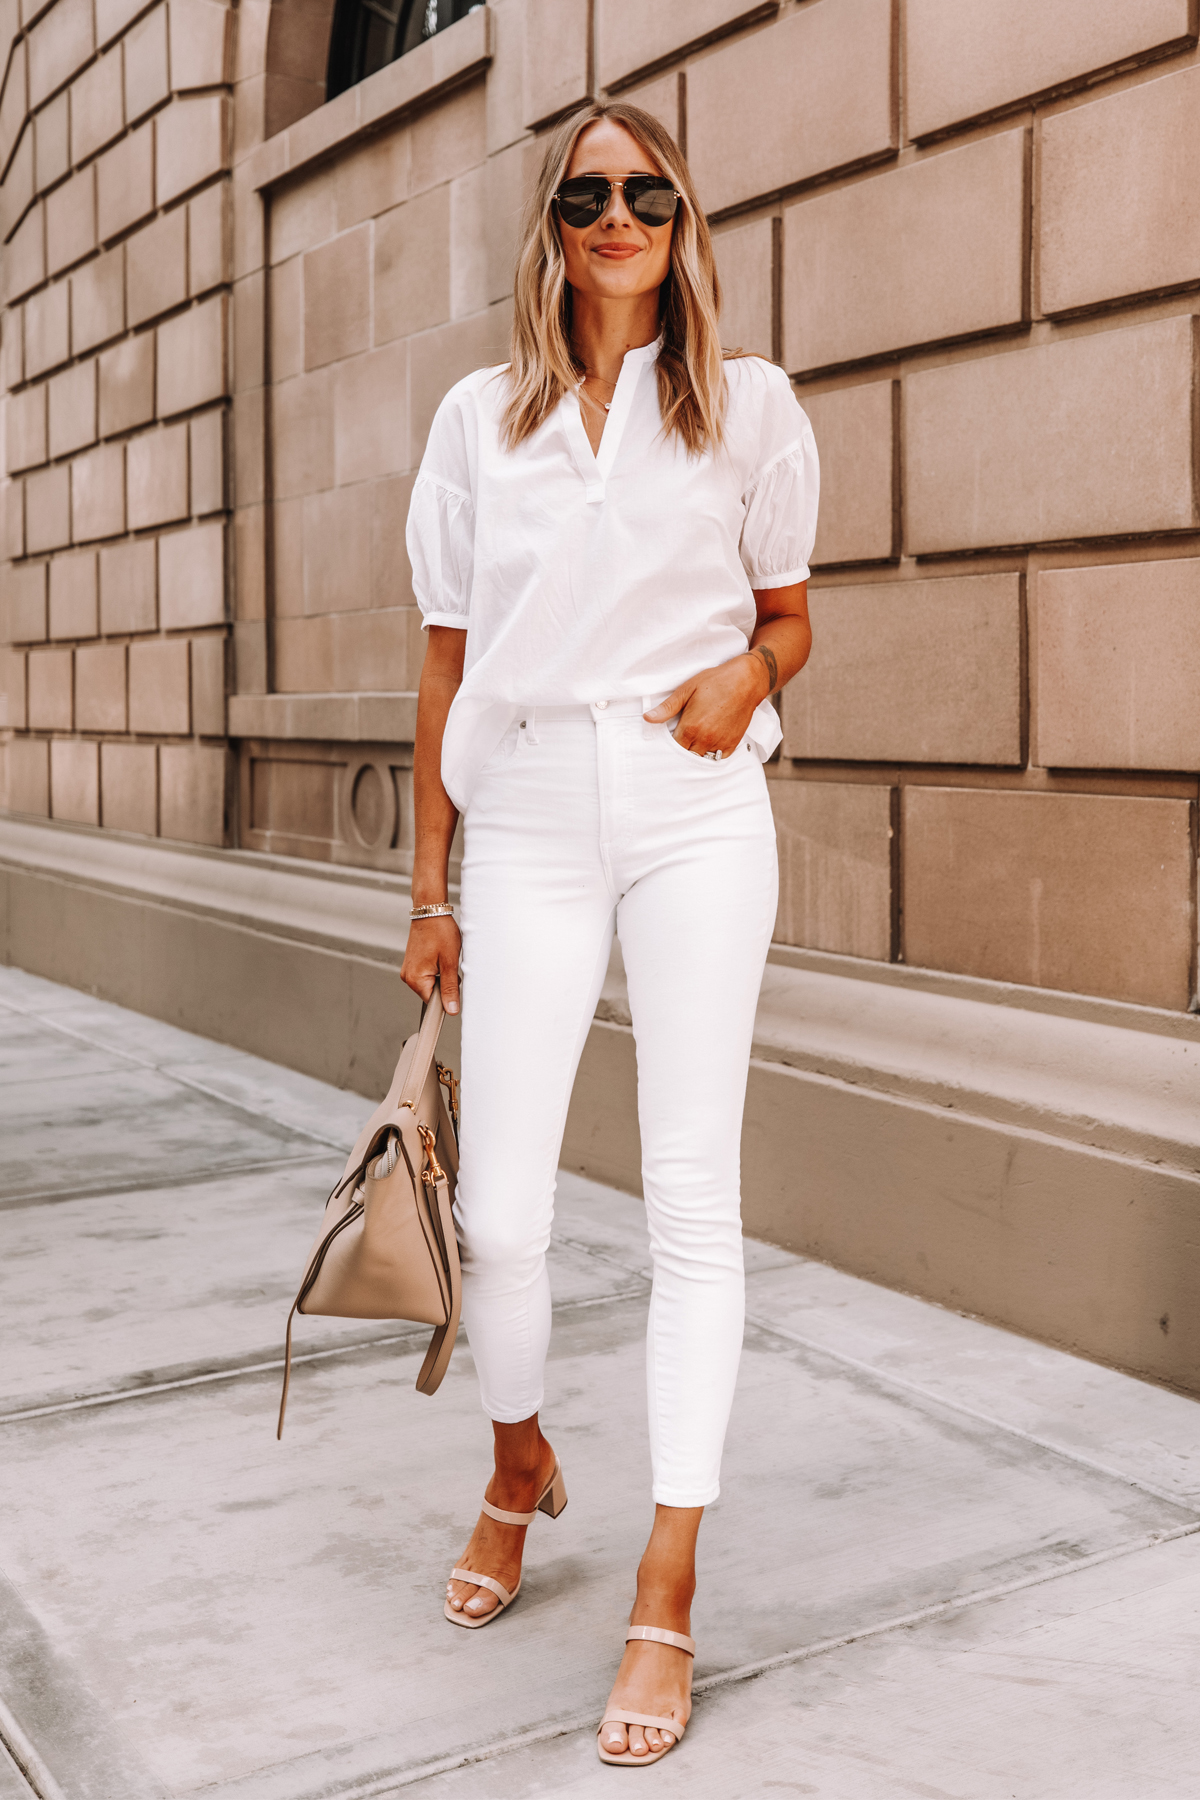 Fashion Jackson Wearing Everlane White Top Everlane White Skinny Jeans Tan Sandals Celine Belt Bag 2